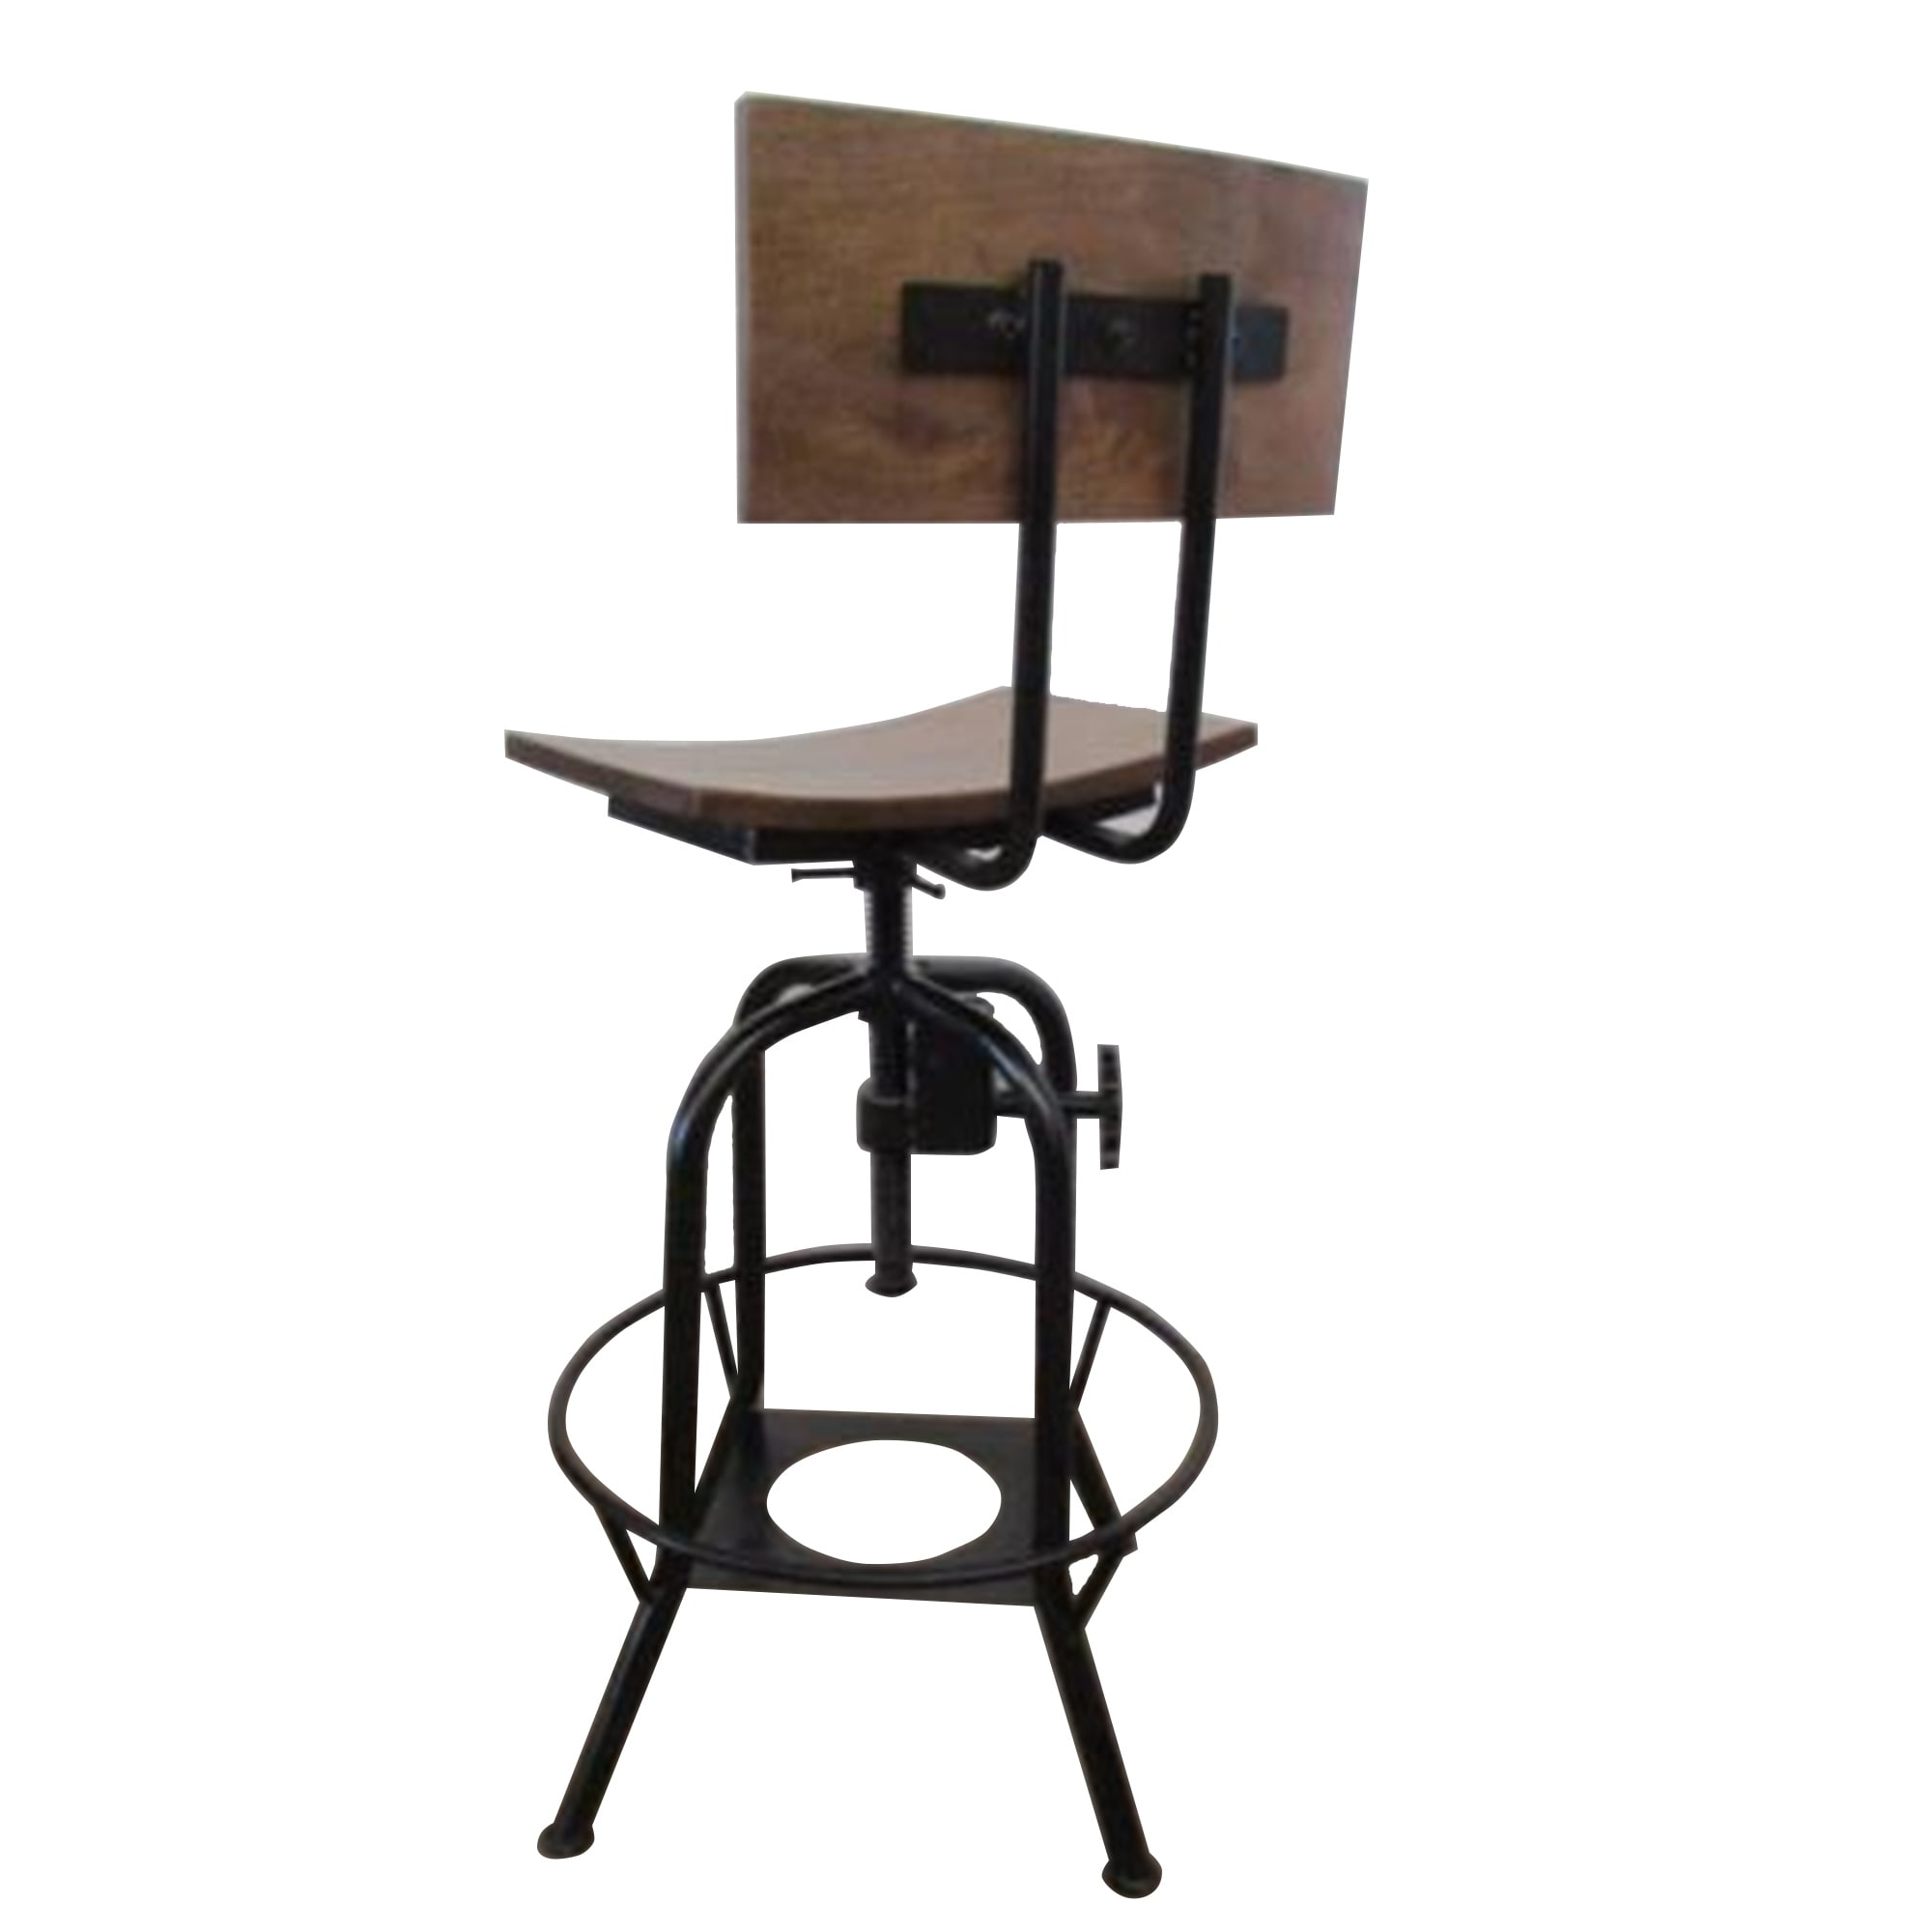 Wood 18 Inch Wide Adjustable Height Bar Stool With Backrest Overstock 14041848